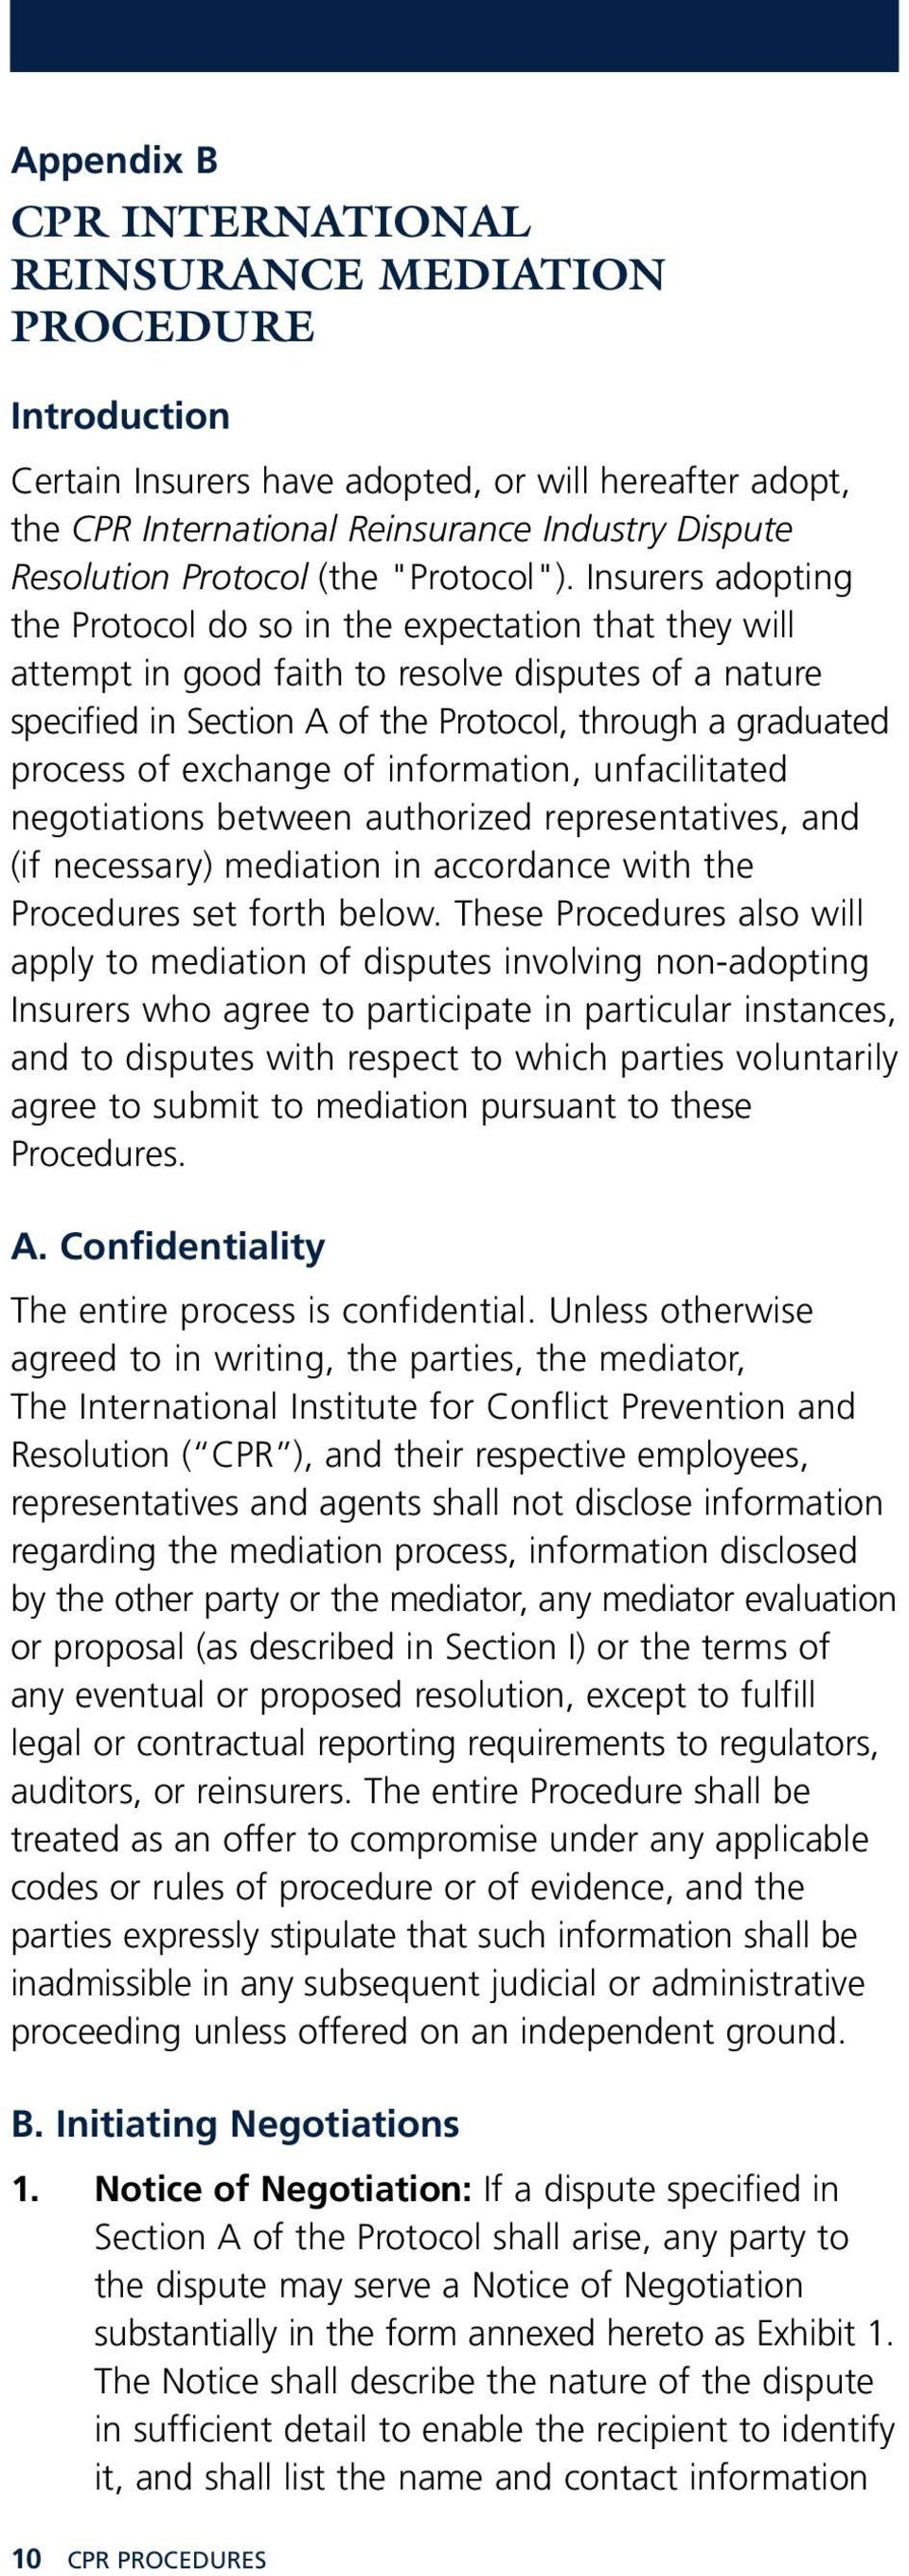 Insurers adopting the Protocol do so in the expectation that they will attempt in good faith to resolve disputes of a nature specified in Section A of the Protocol, through a graduated process of